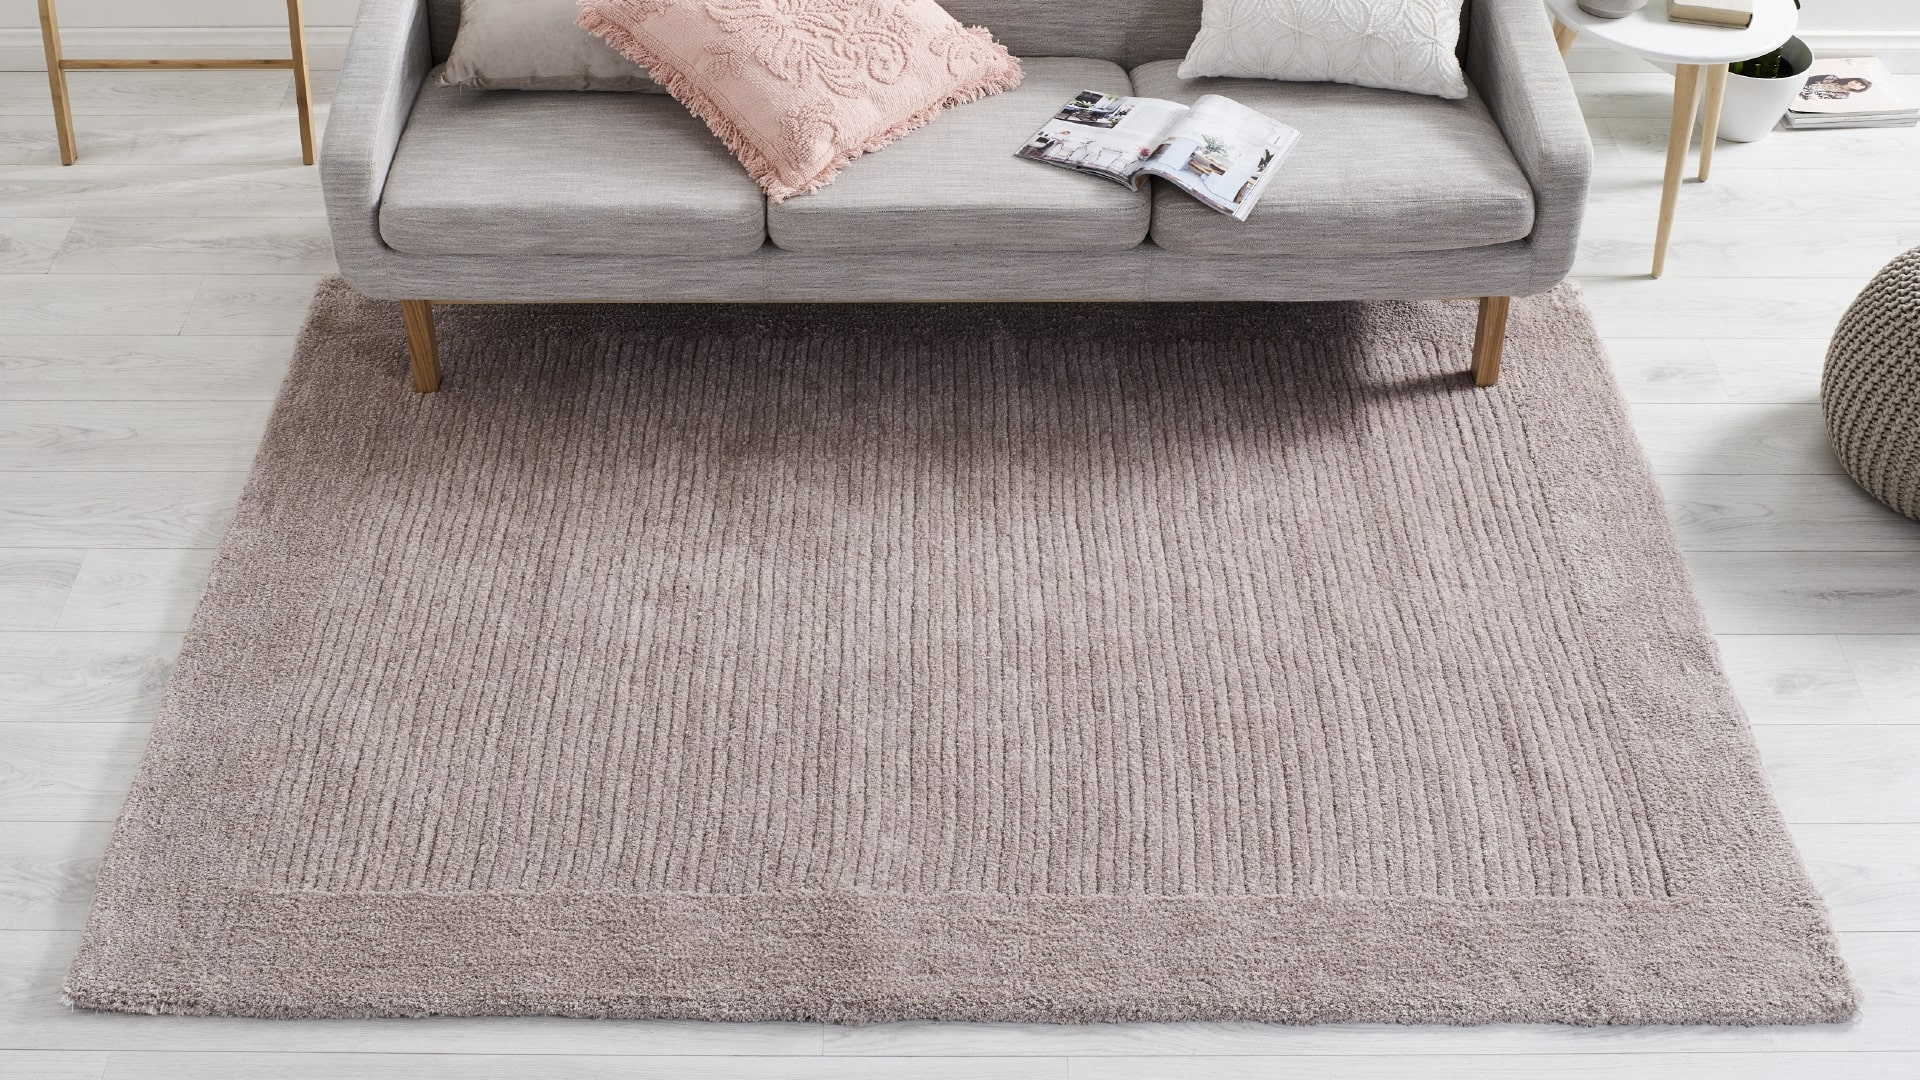 Rotate & Refresh Your Rugs & Mats